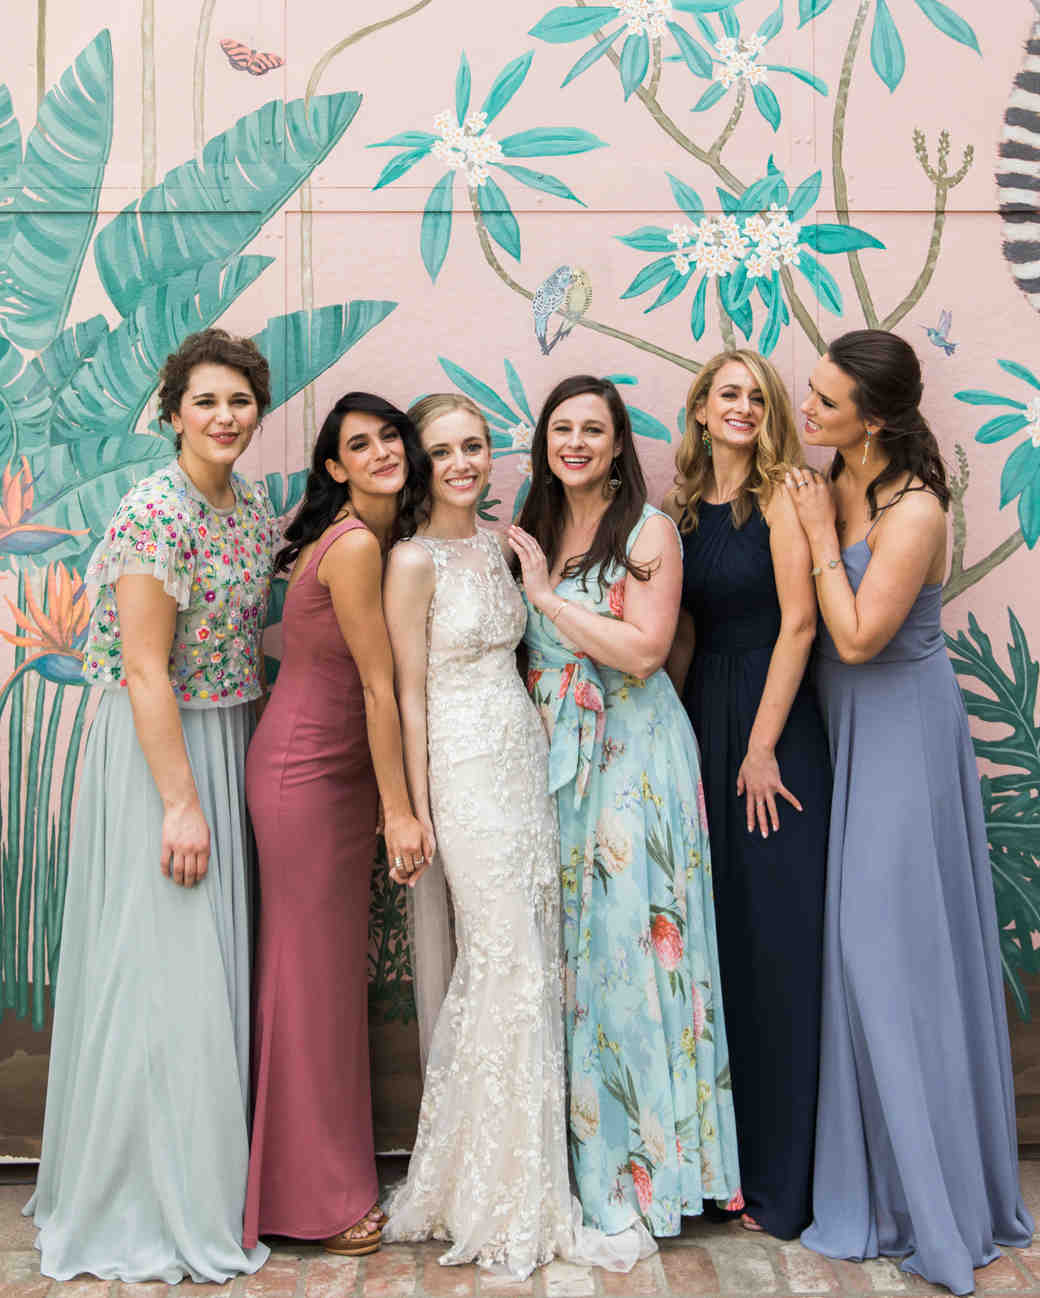 bride with bridesmaids in different dresses in front of painted wall